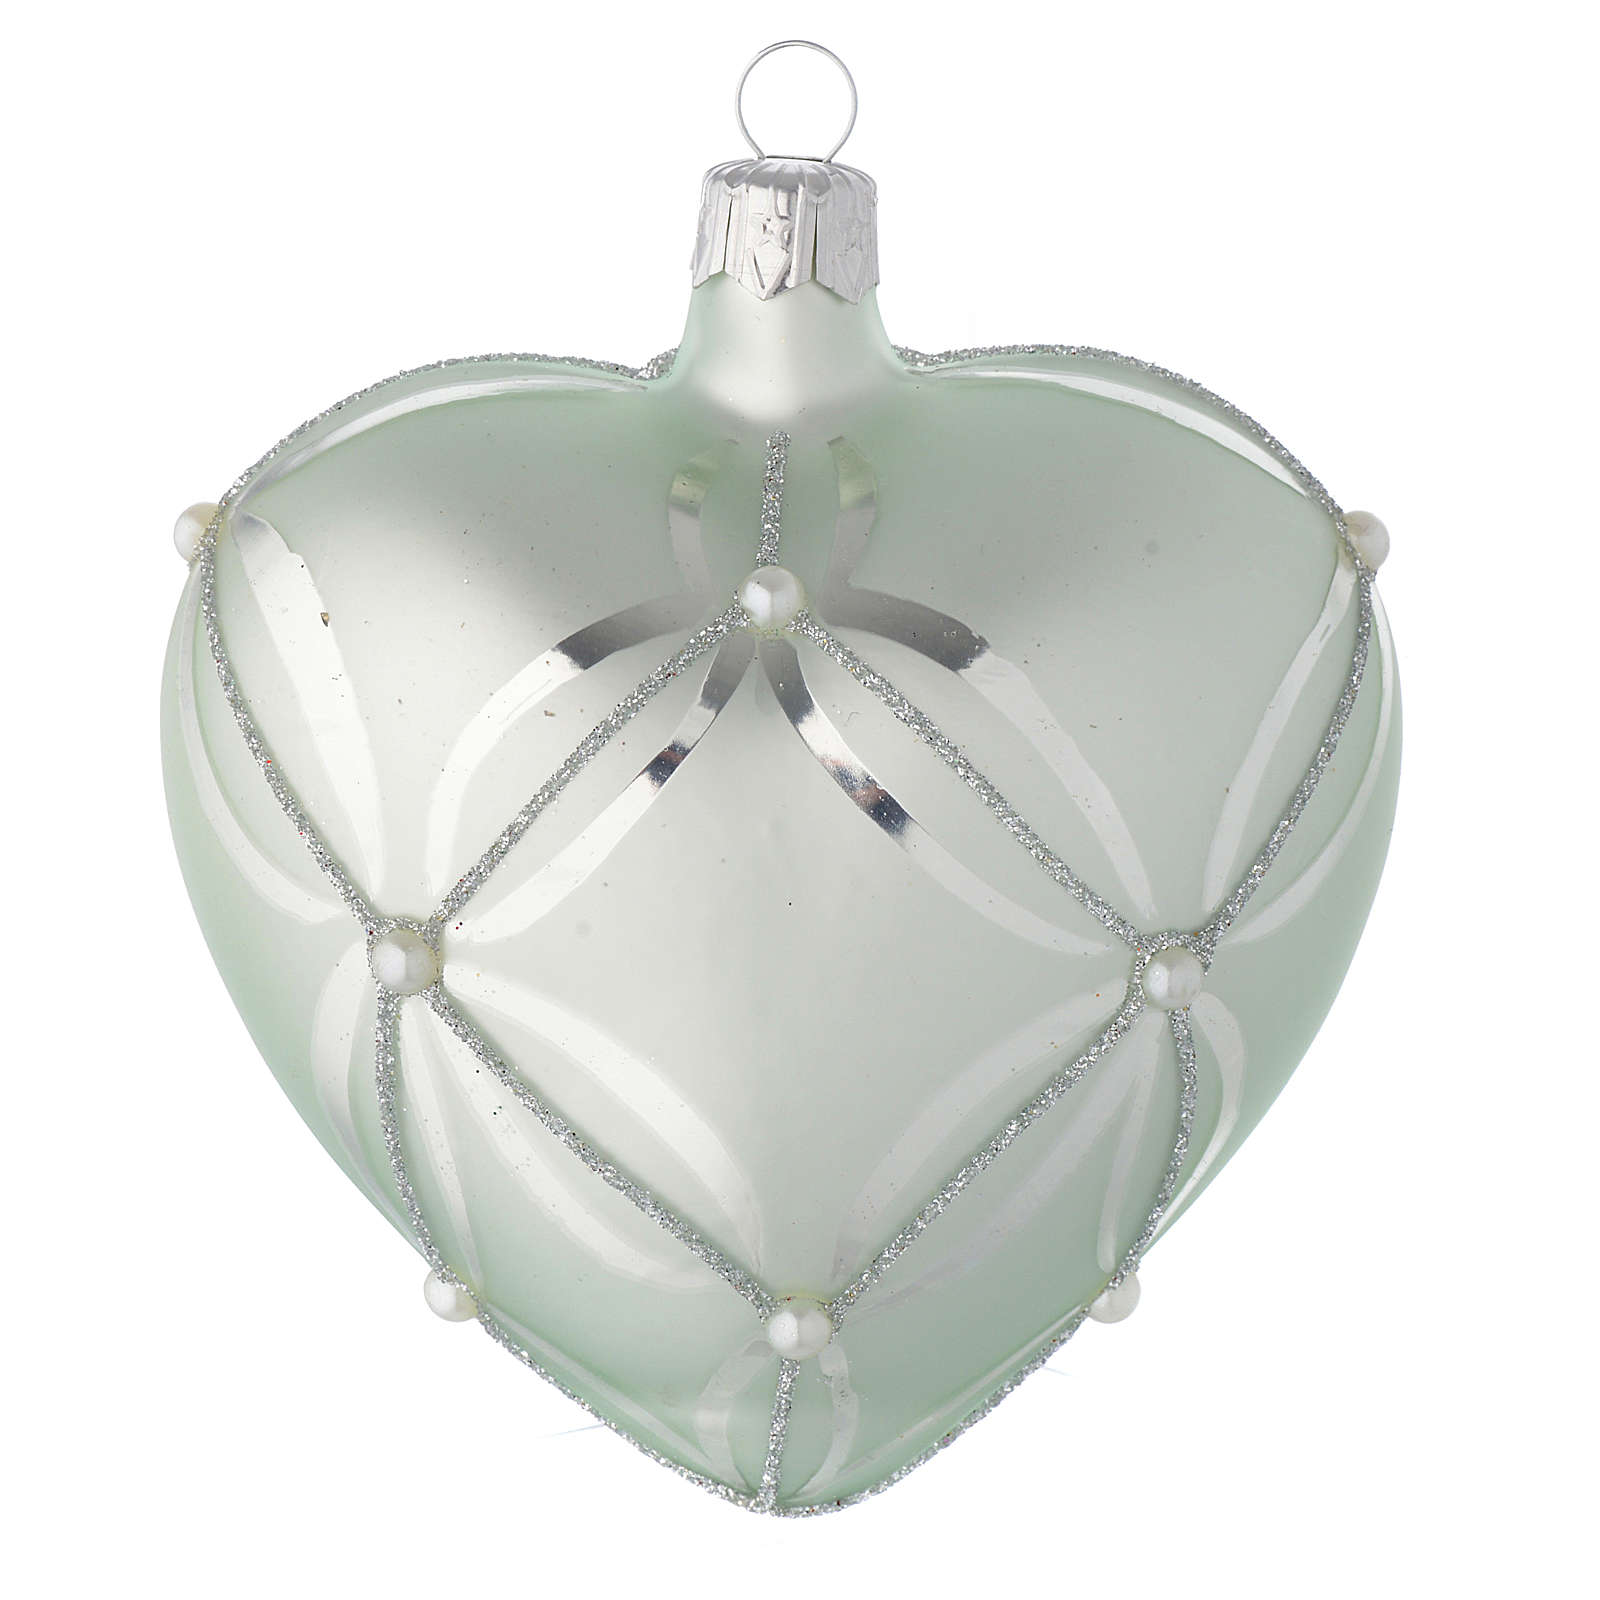 Heart Shaped Bauble in sage green blown glass with pearls 100mm 4